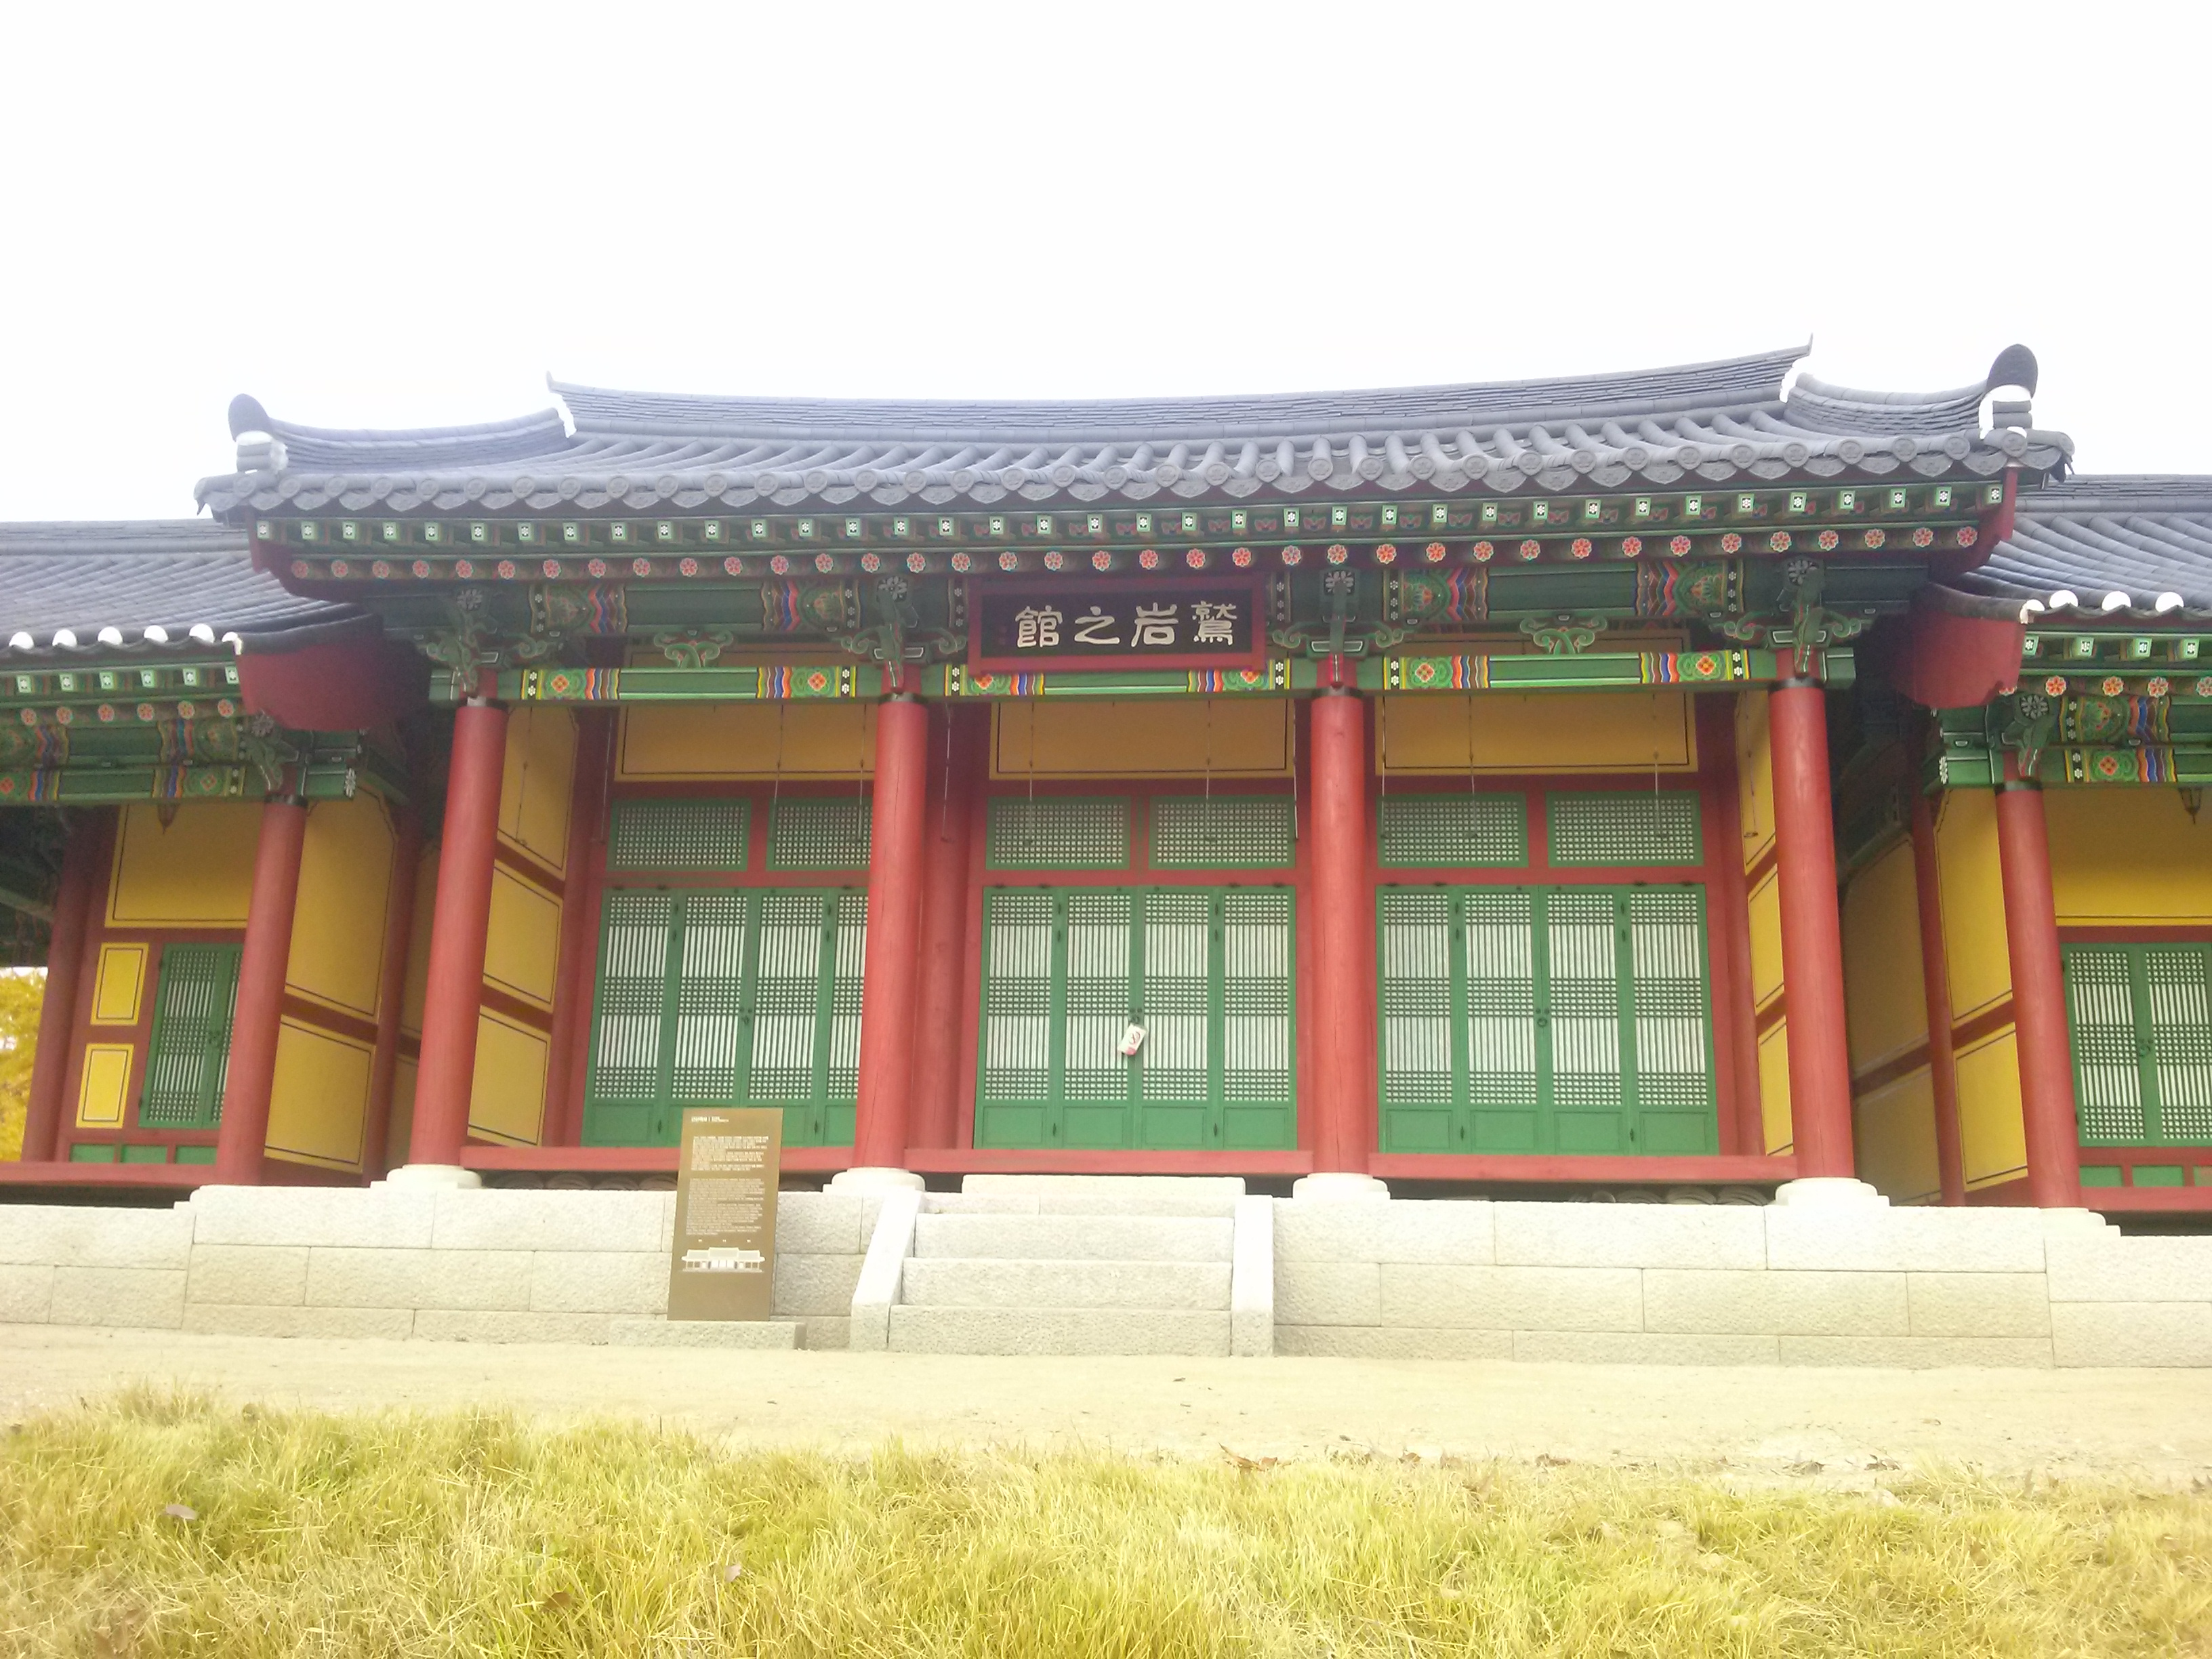 Ansaneupseong Fortress and Government Office Site